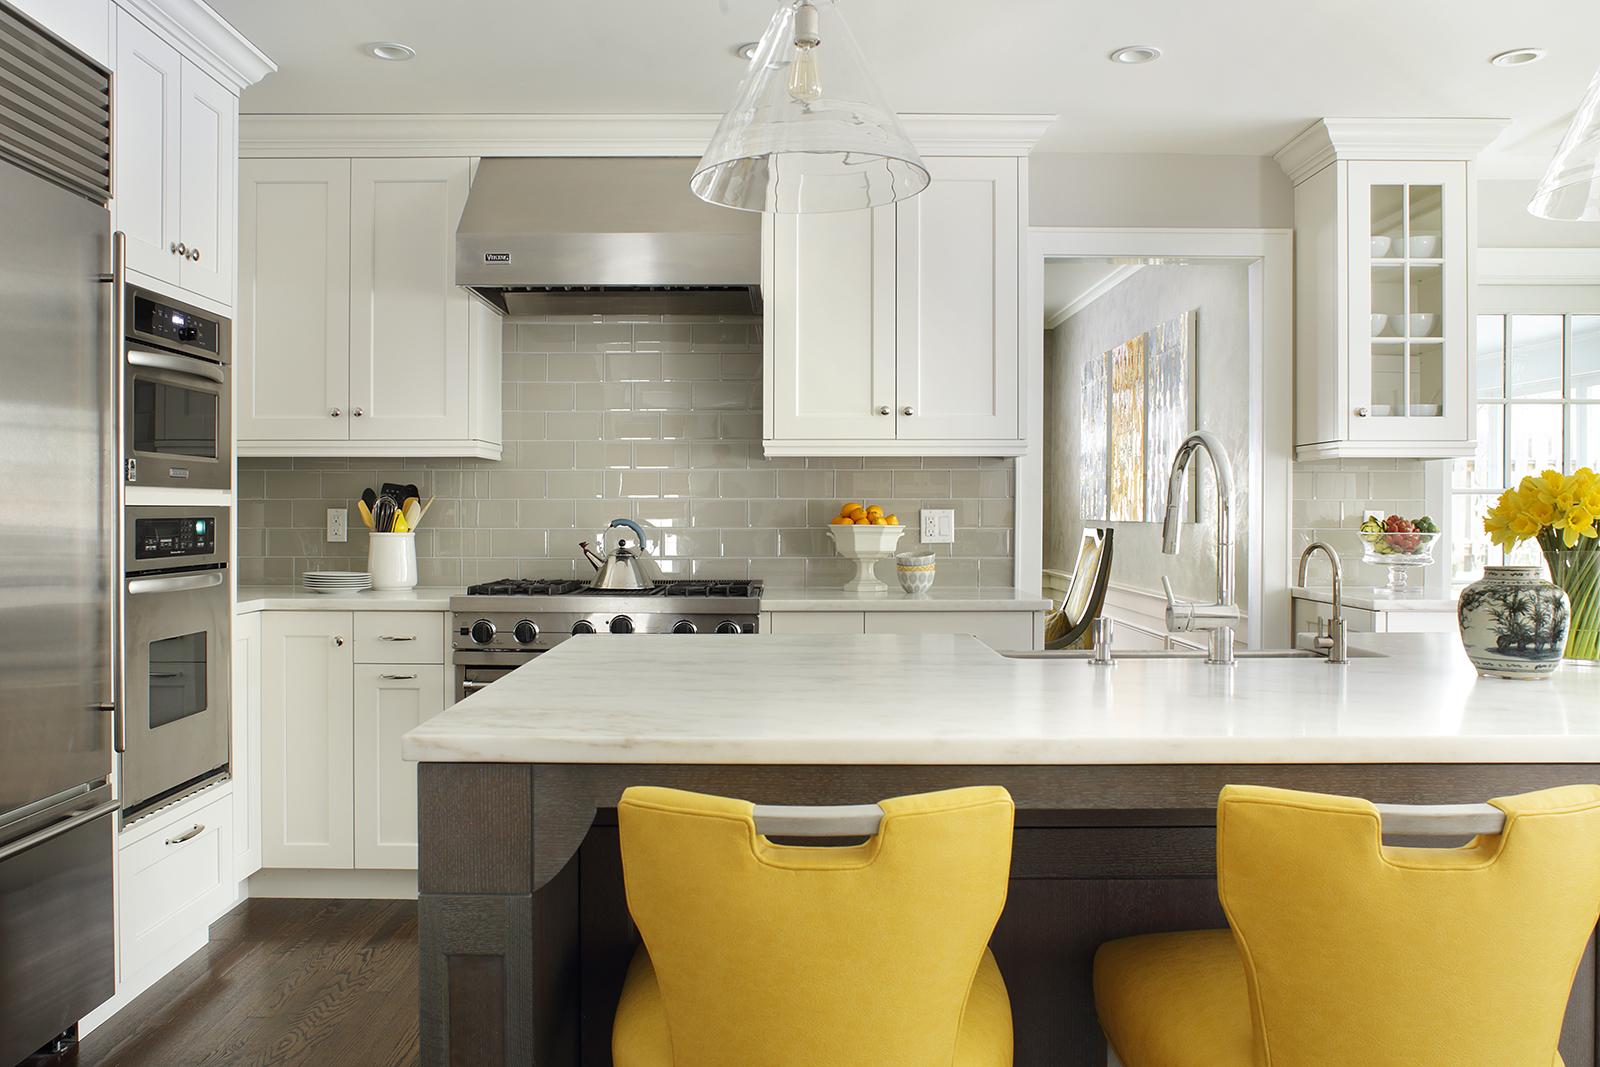 Gray Kitchens - Kitchen Design